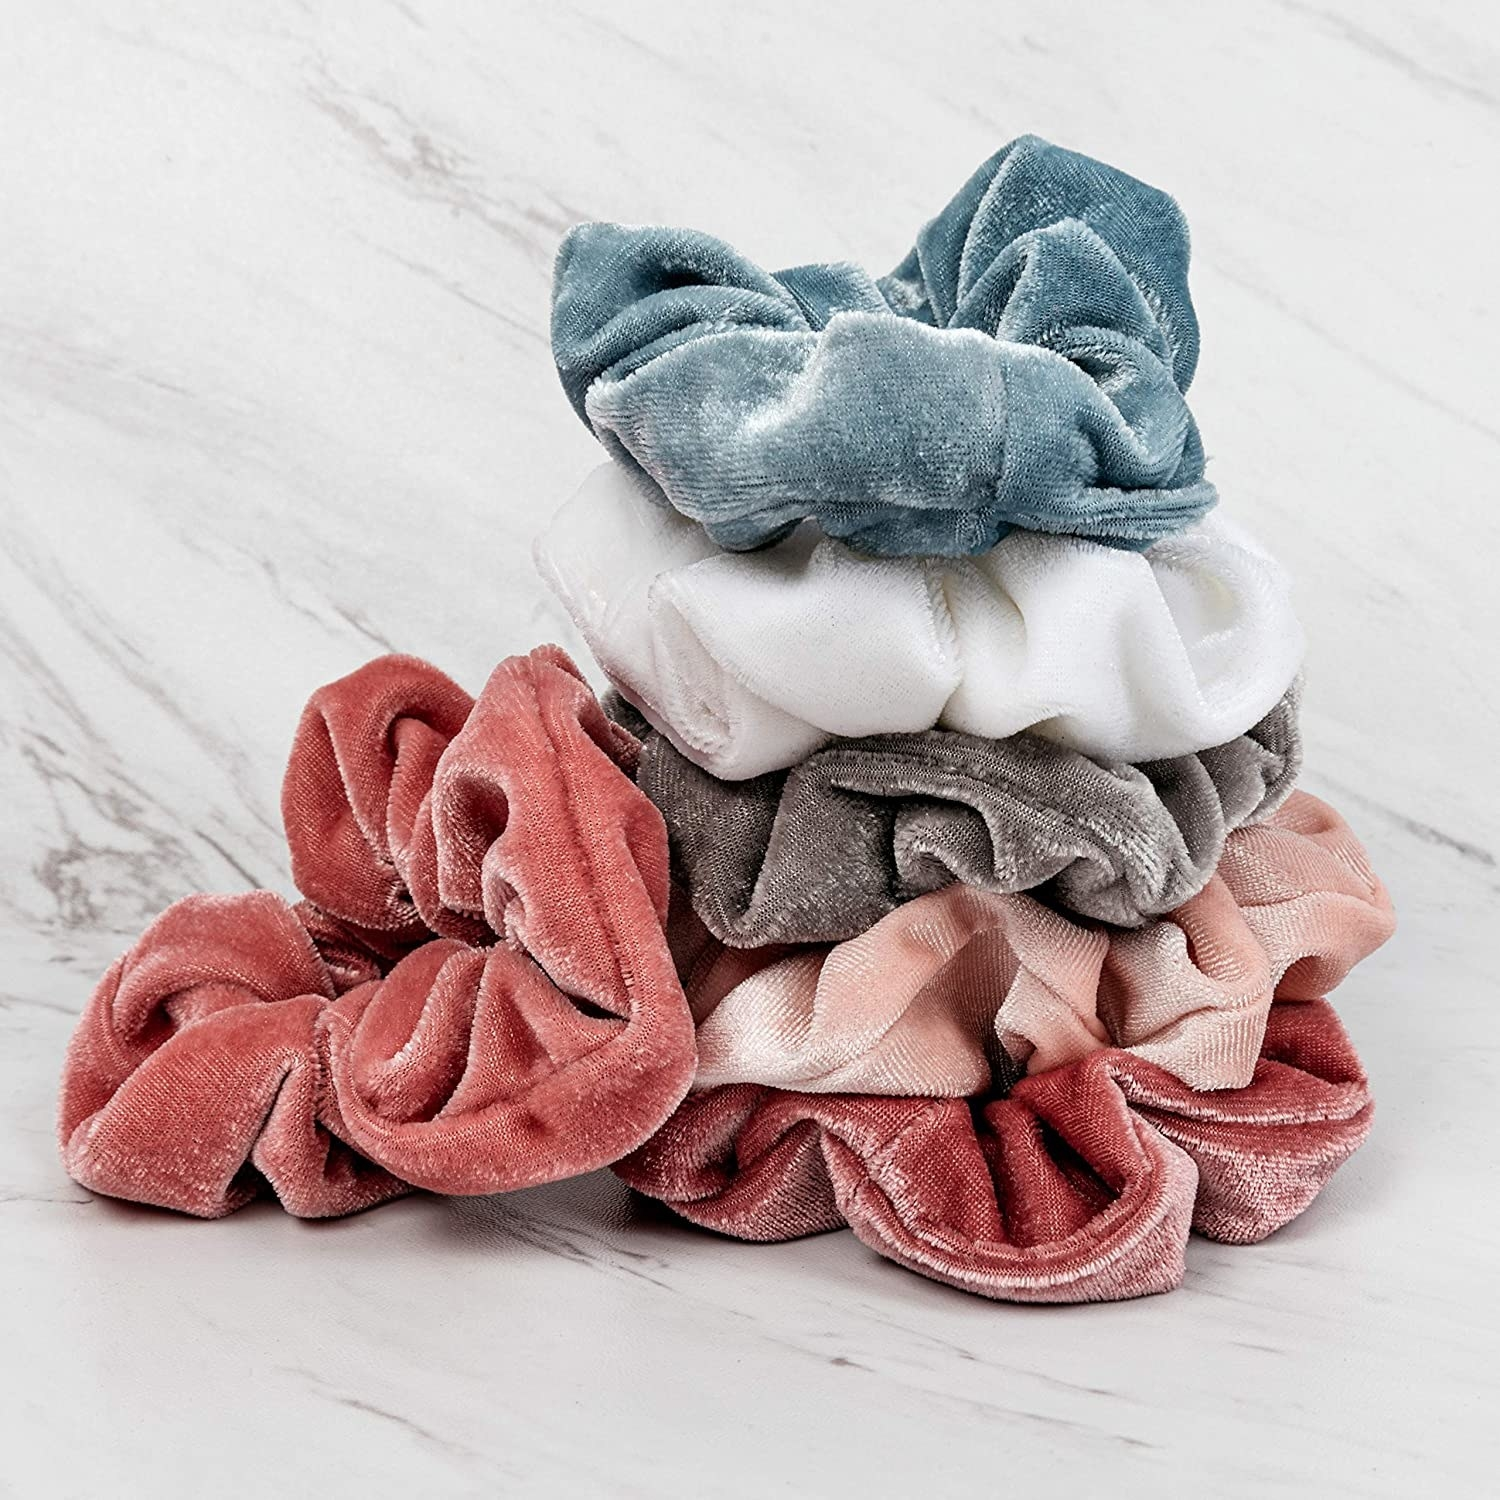 a stack of pink, gray, white, and blue velvet scrunchies